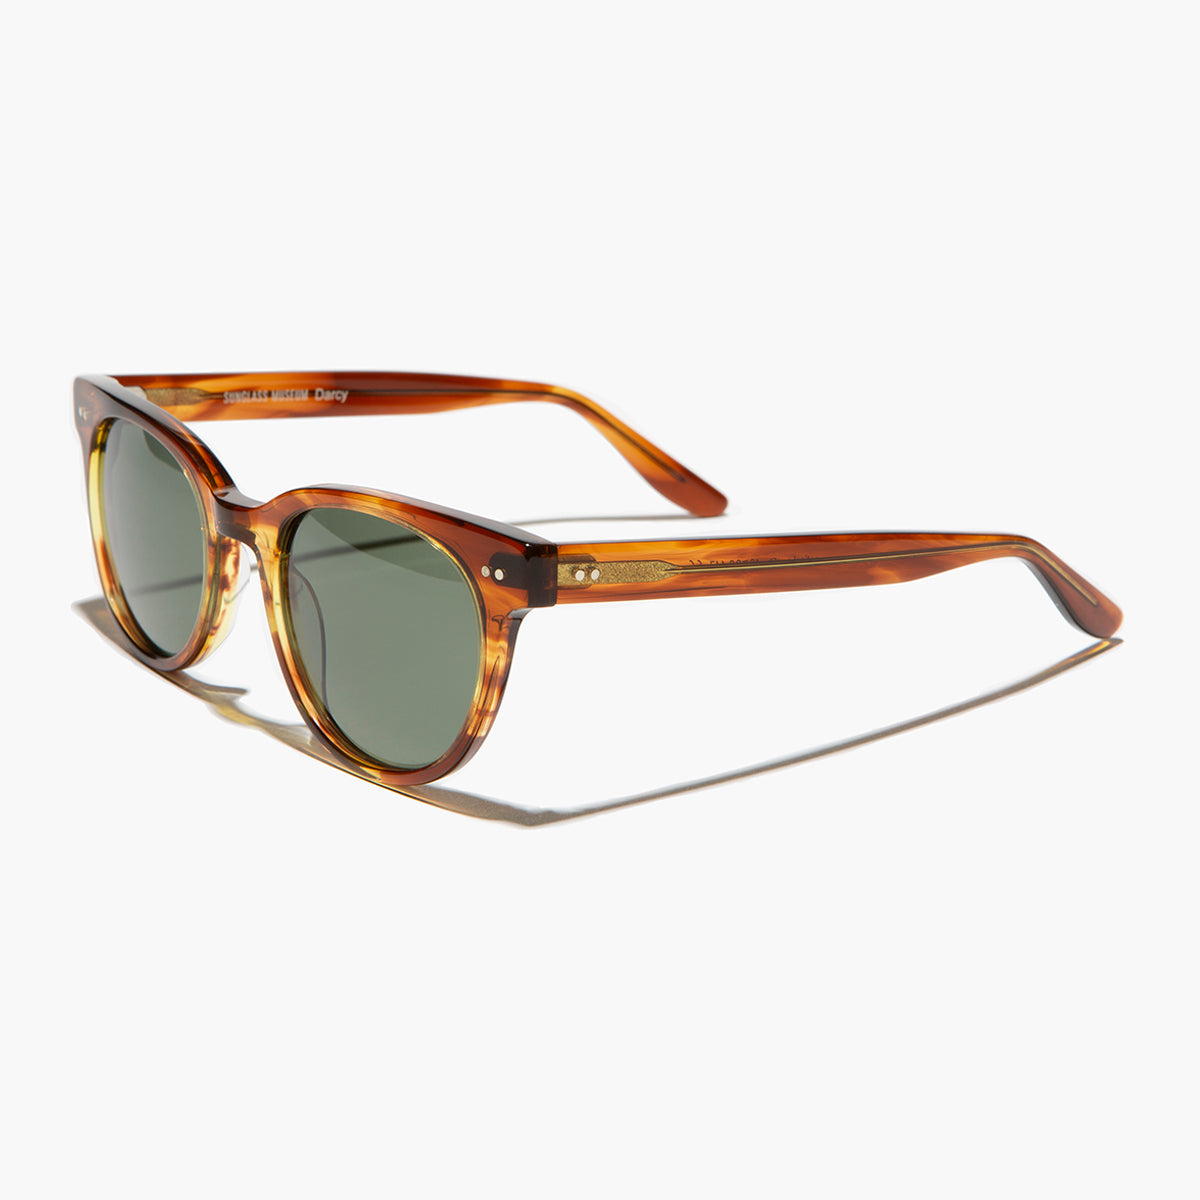 rounded square retro sunglass with polarized lenses